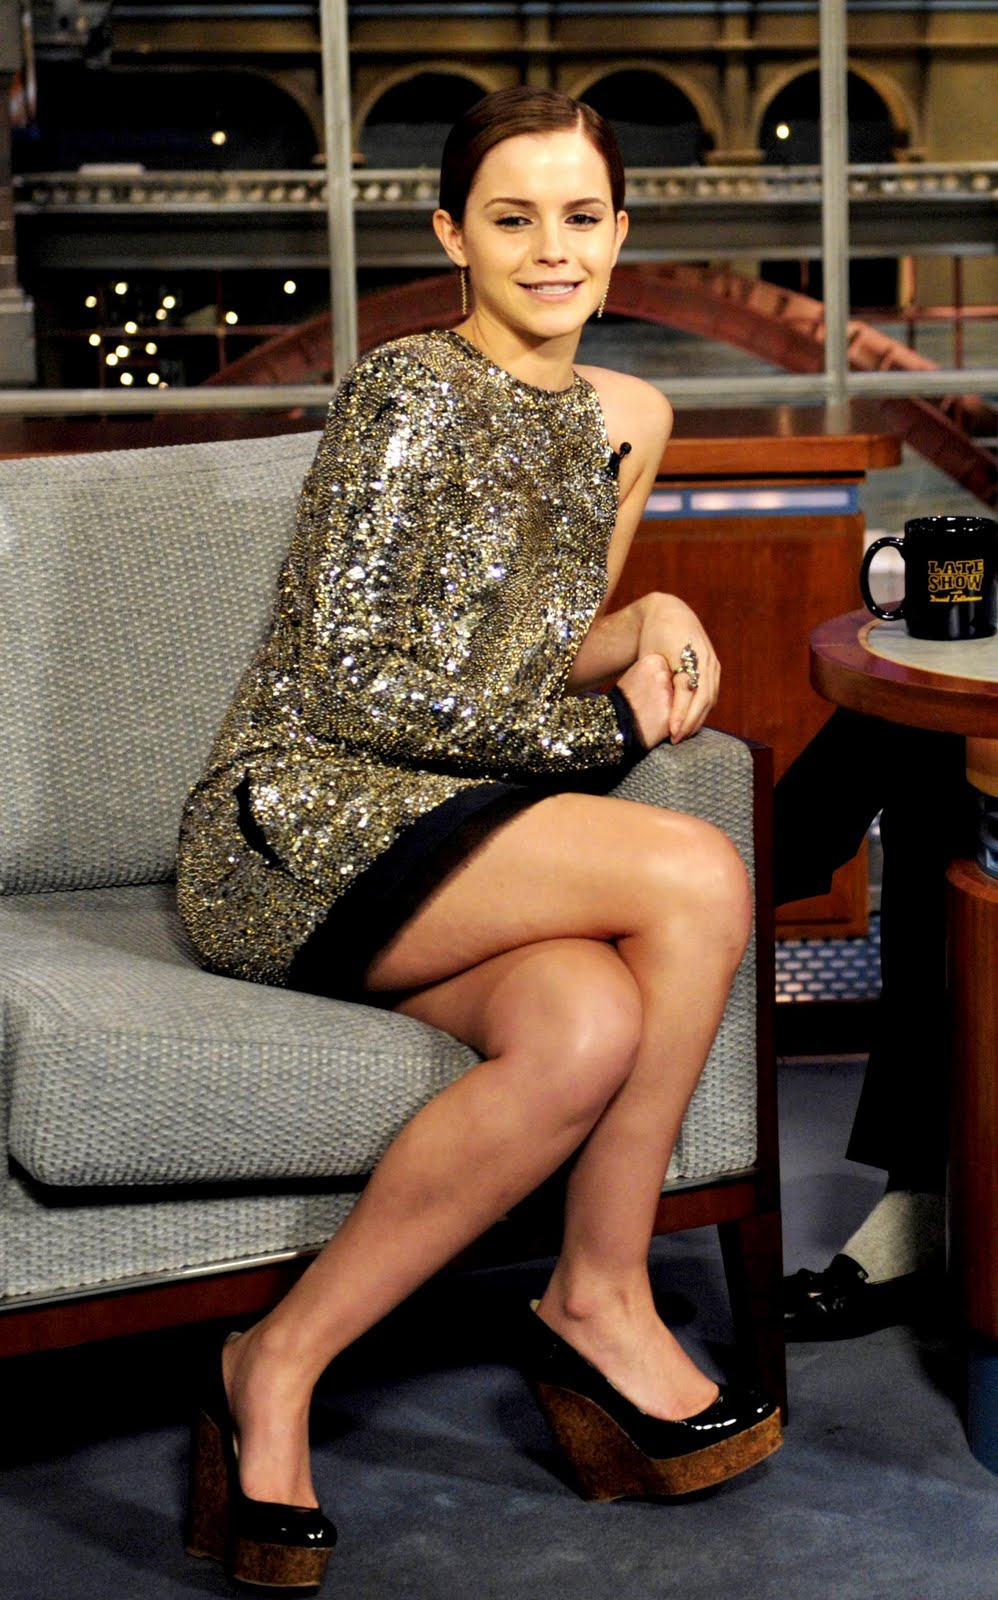 Kks Girl Wallpaper Emma Watson Updates Emma Watson During The Late Show With